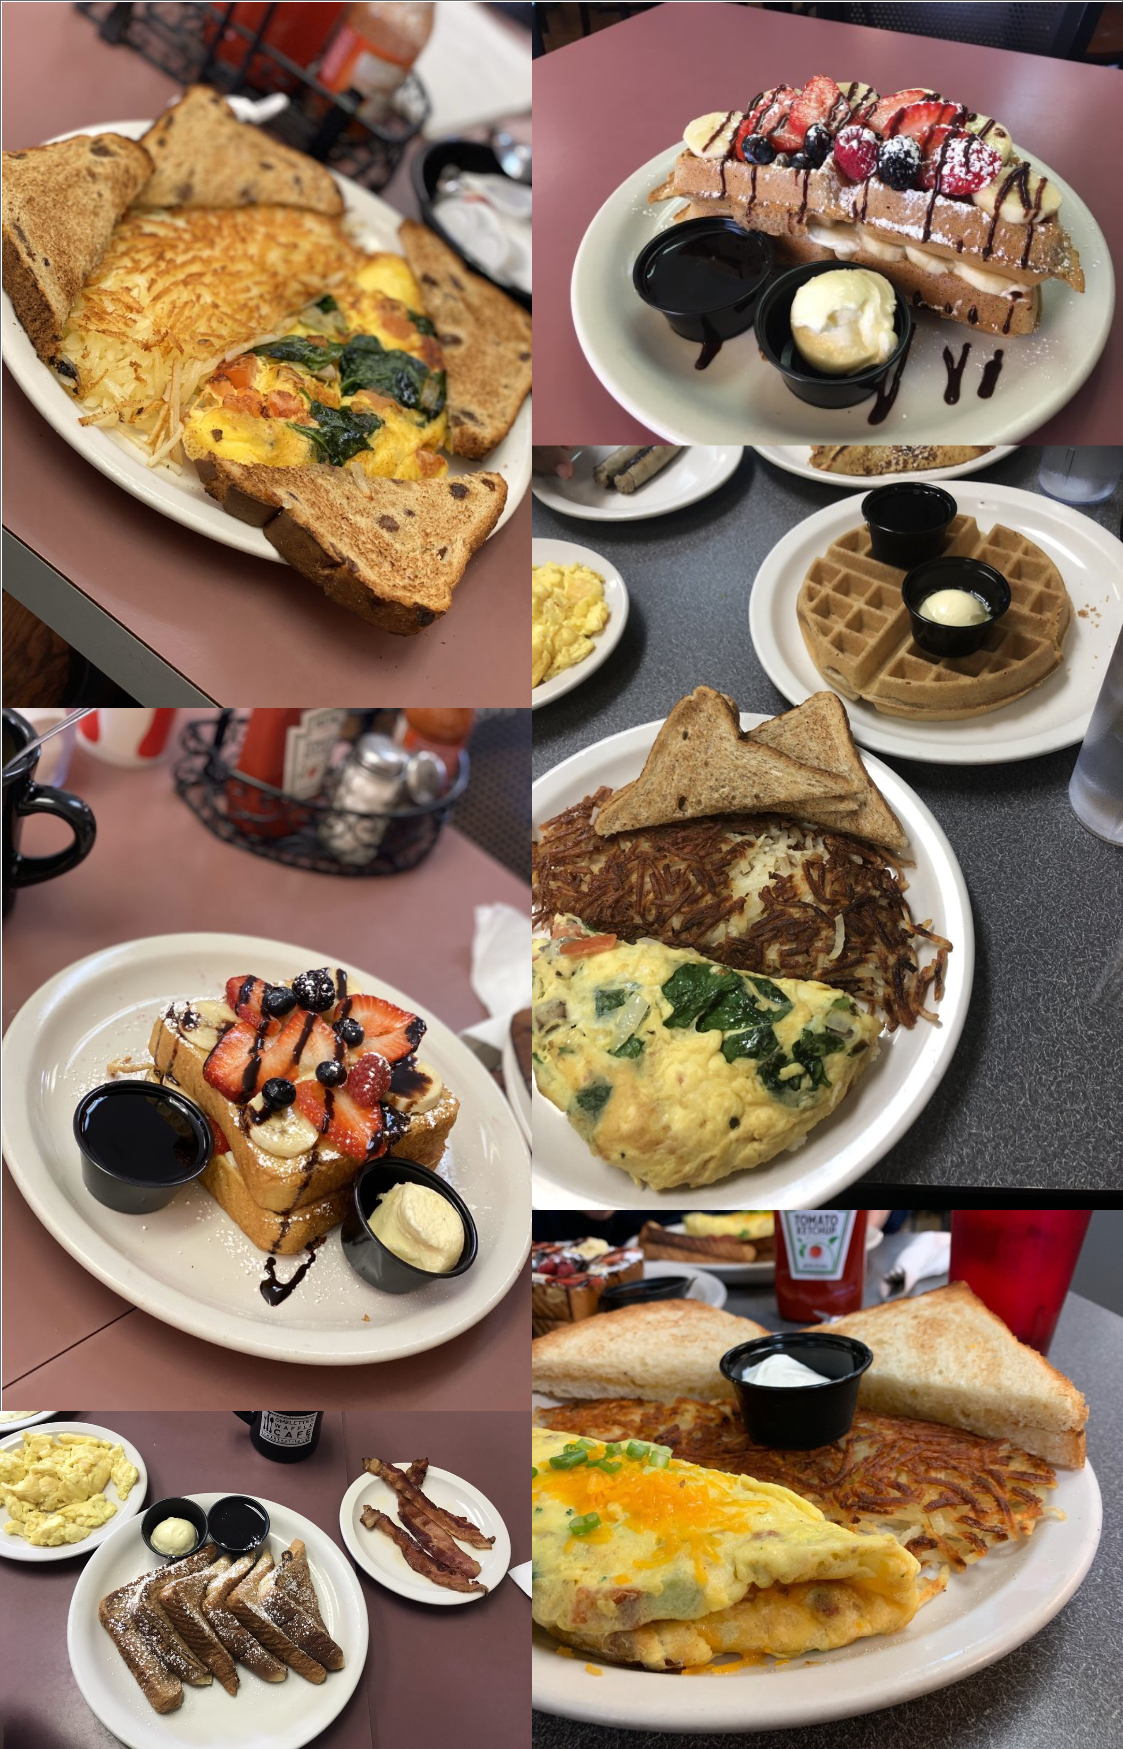 Your favorite breakfast take out places near Plymouth, MI must include Omelette & Waffle Cafe.